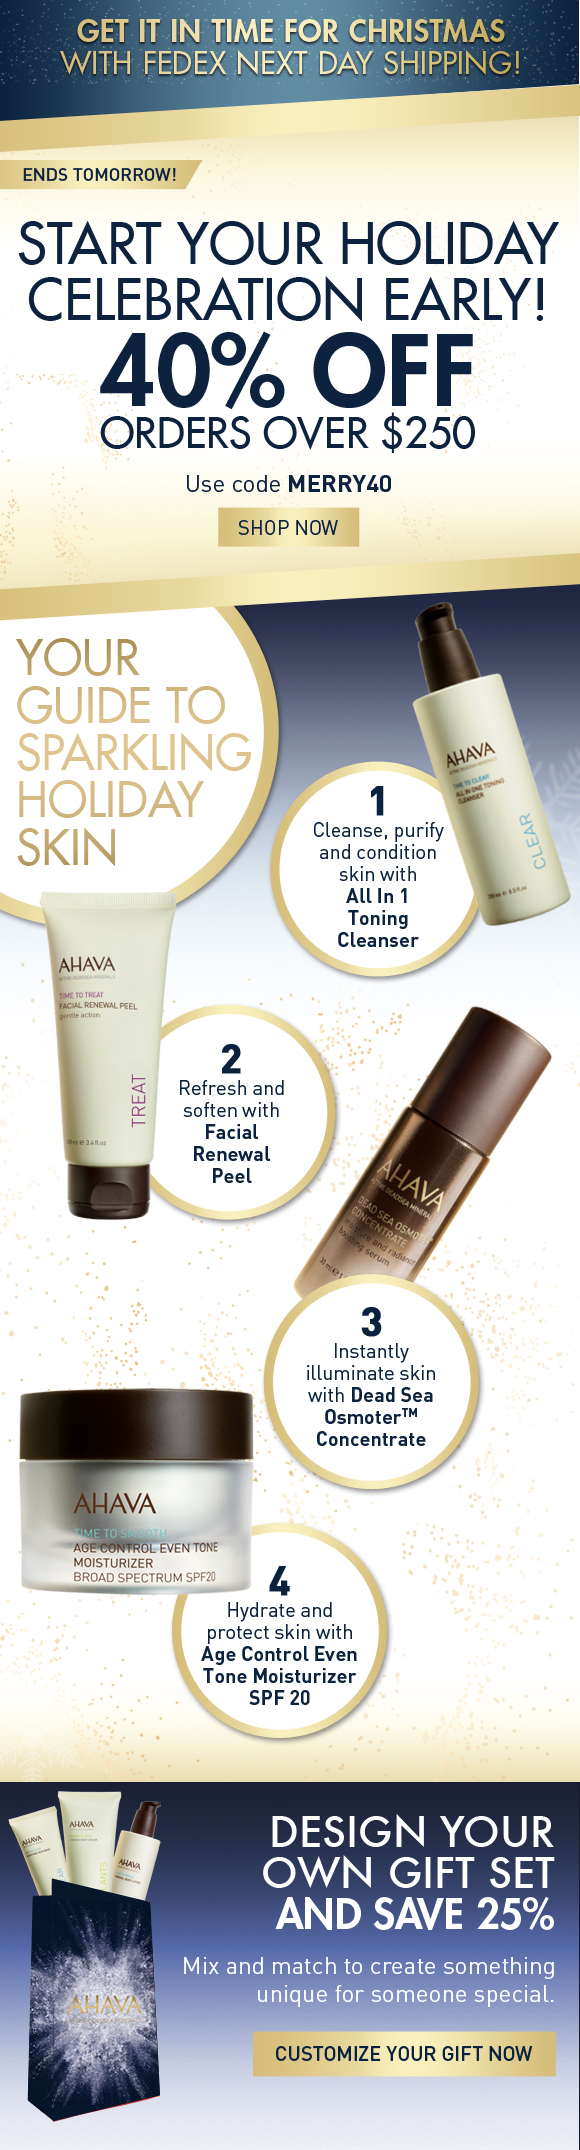 Get it in time for Christmas with FedEx Next Day Shipping! Start your holiday celebration early! 40% off orders over $250 Use code MERRY40 SHOP NOW ends tomorrow! Your guide to Sparkling Holiday Skin 1.	Cleanse, purify and condition skin with All In 1 Toning Cleanser 2.	Next, Refresh and soften with Facial Renewal Peel 3.	Instantly illuminate skin with Dead Sea OsmoterTM Concentrate 4.	Finally hydrate and protect skin with Age Control Even Tone Moisturizer SPF 20 Design Your Own Gift Set And save 25% Mix and match to create something unique for someone special.  Customize Your Gift Now